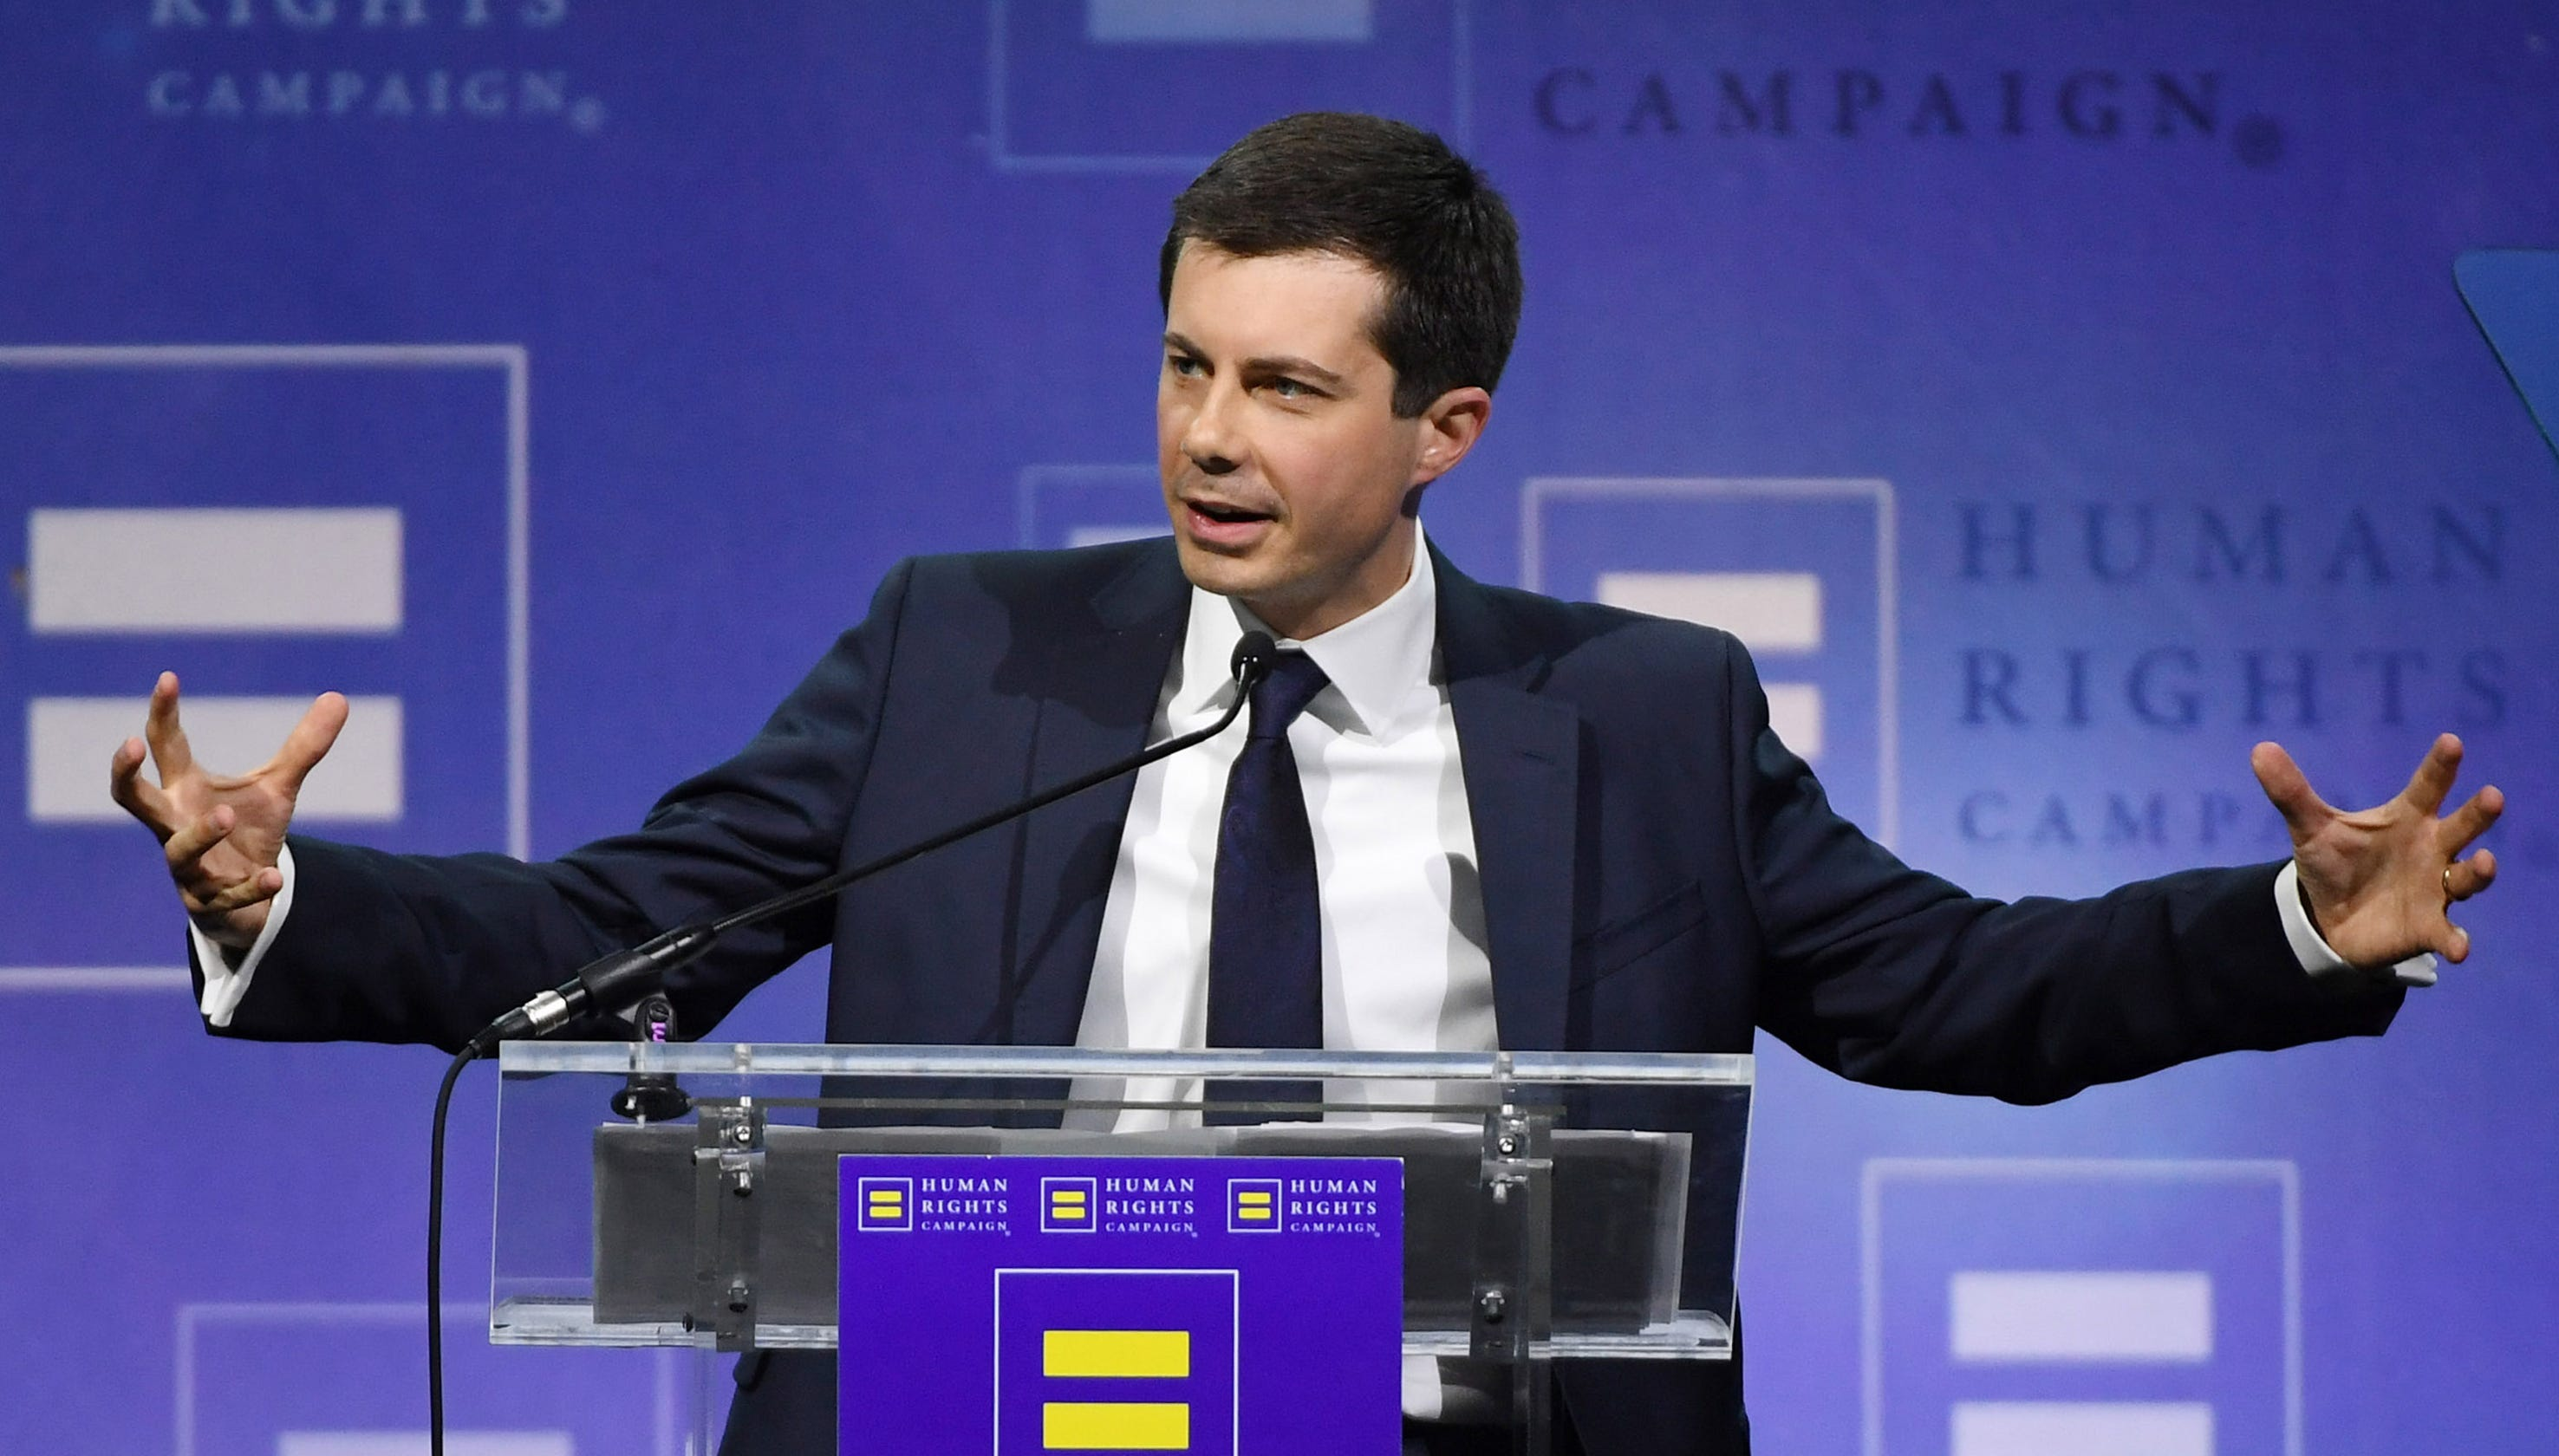 Pete Buttigieg Says Donald Trump Divides With White